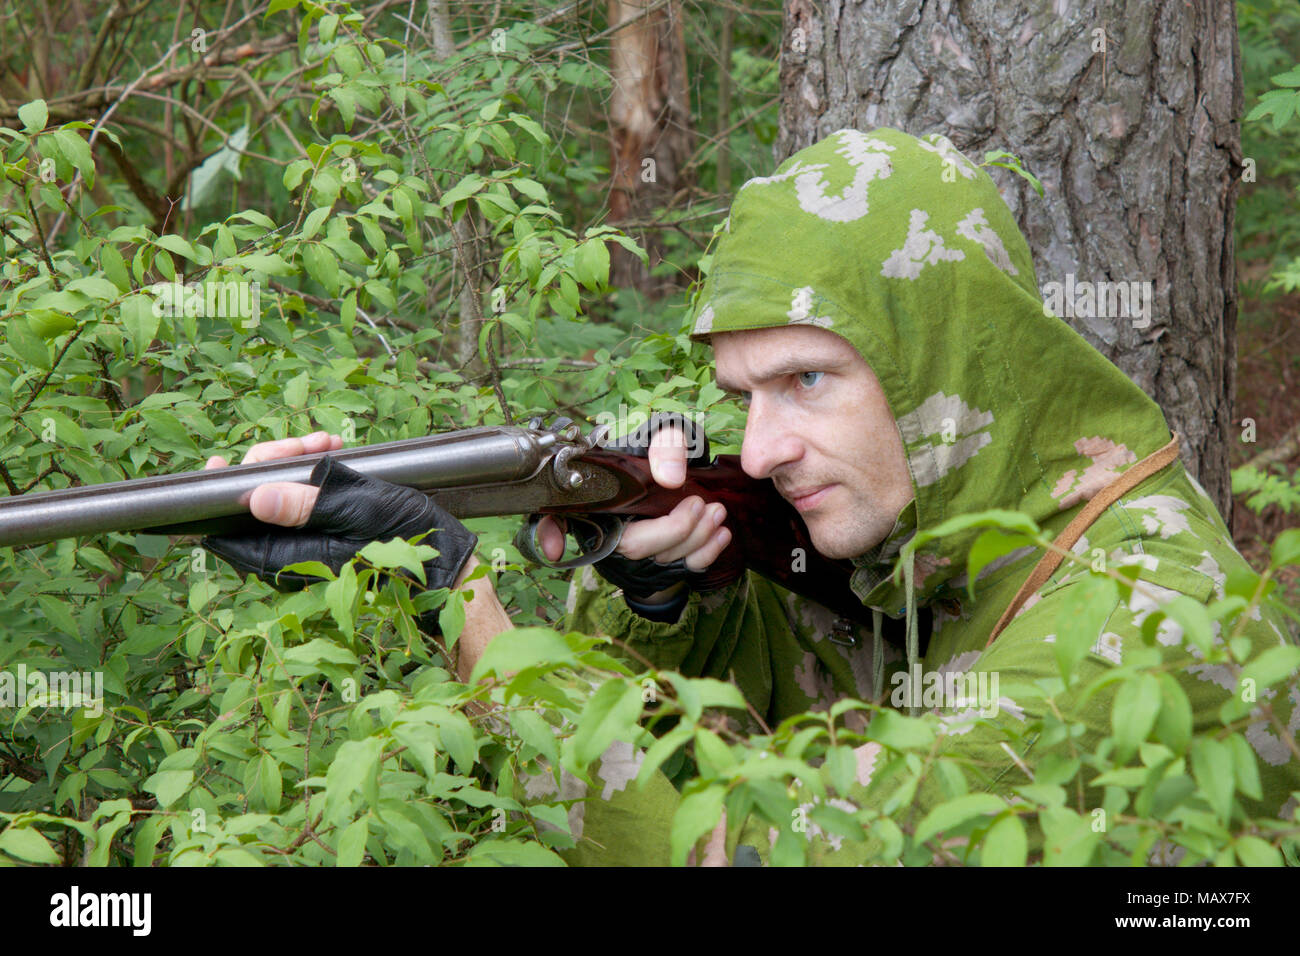 The shooter in camouflage with an old trigger gun - Stock Image